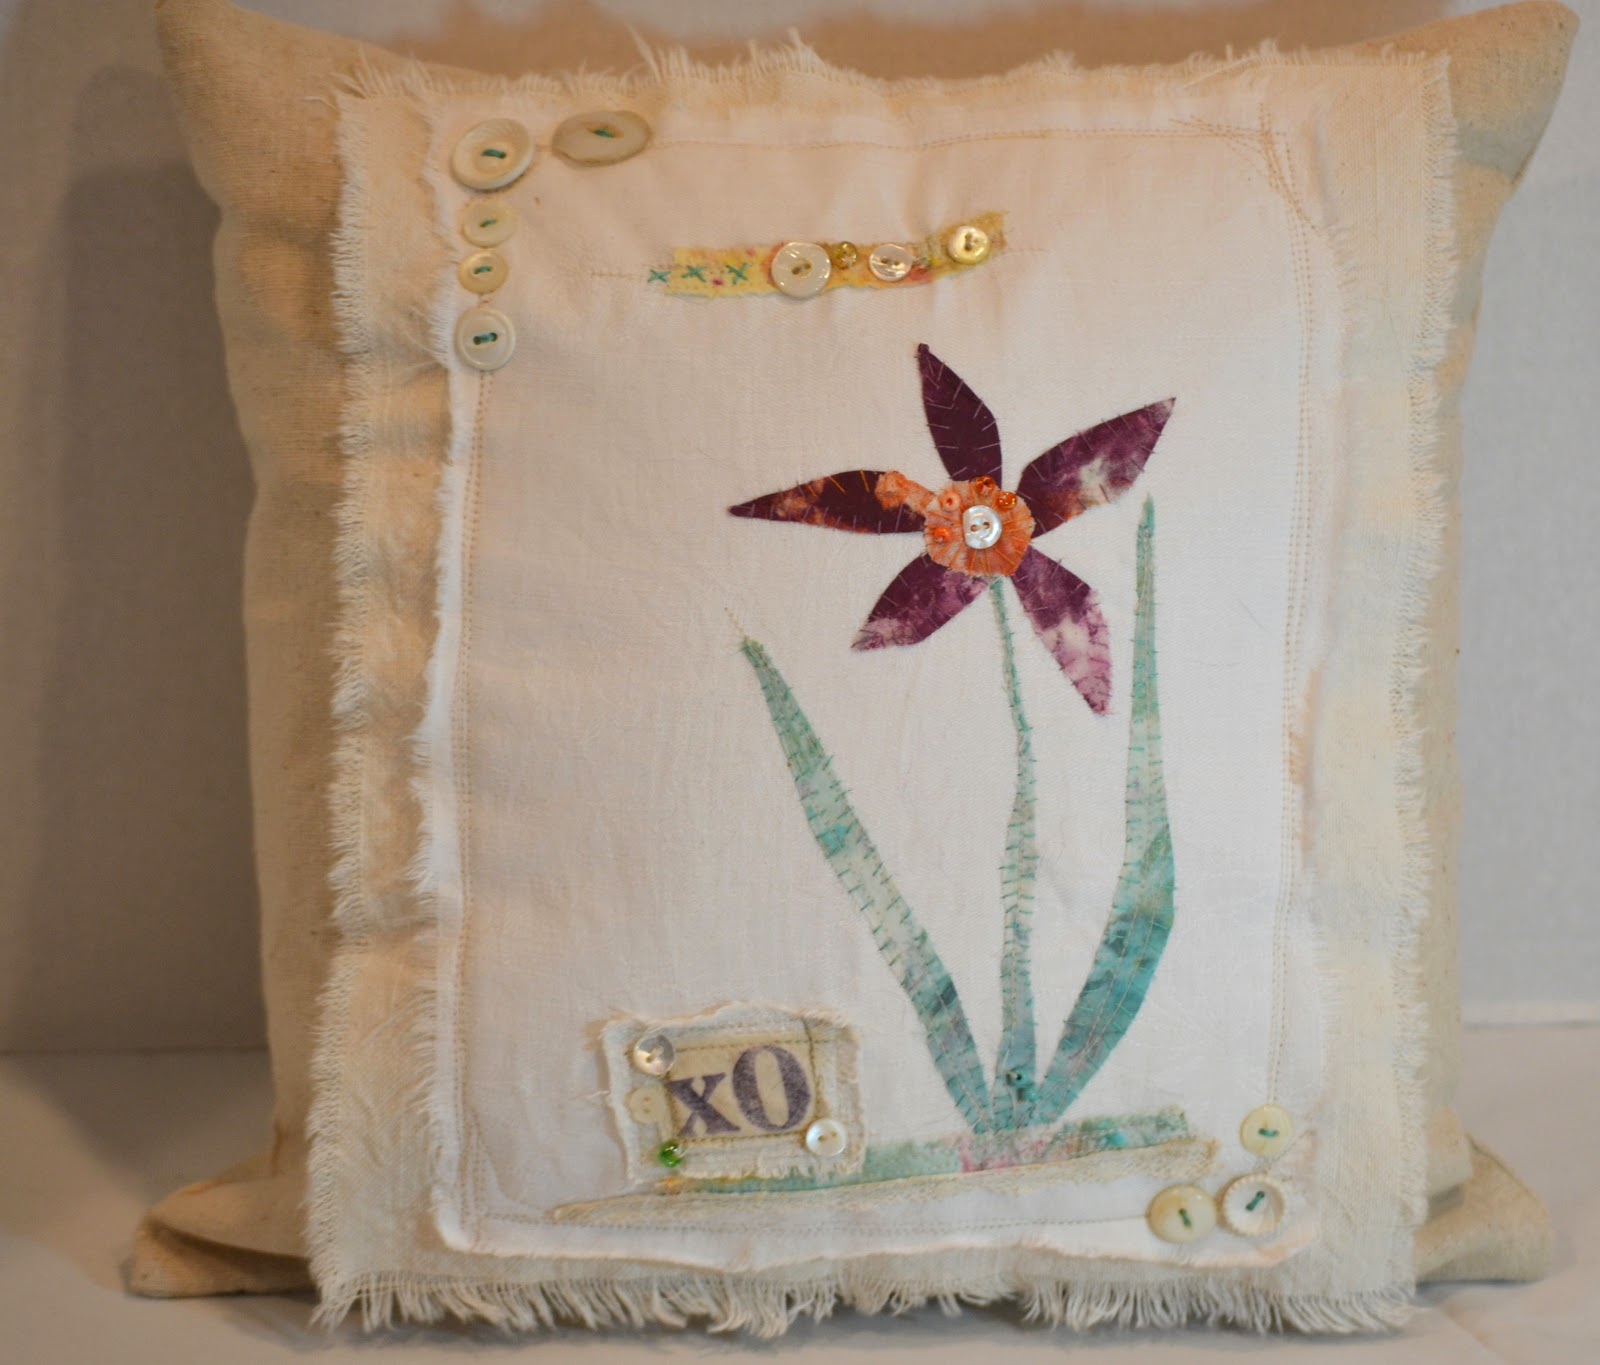 Scrappy Chic Applique Pillow